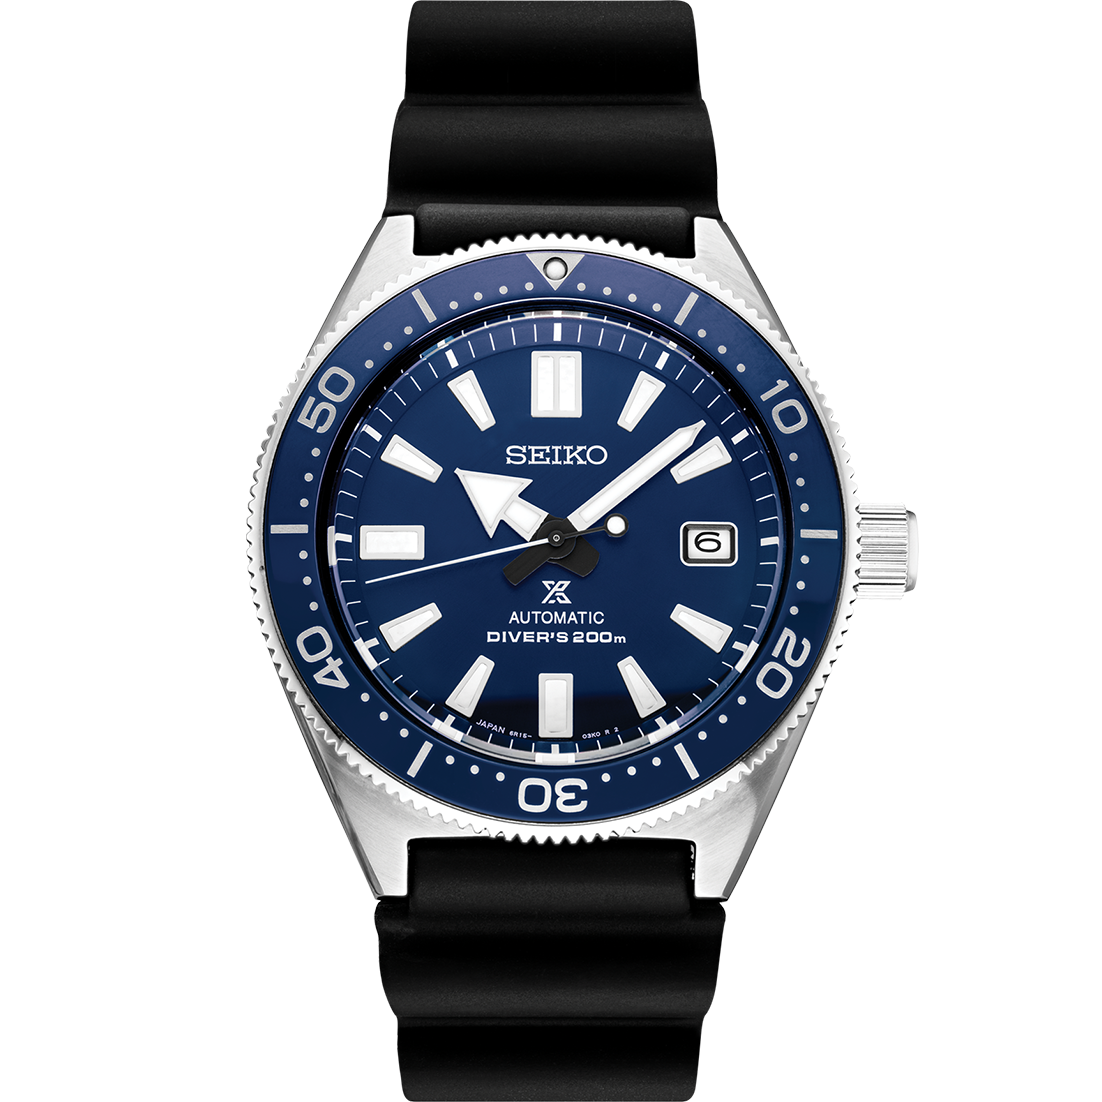 Seiko Prospex Stainless Steel Diver's 200m Automatic With Manual Winding Capacity Watch ( SPB053)